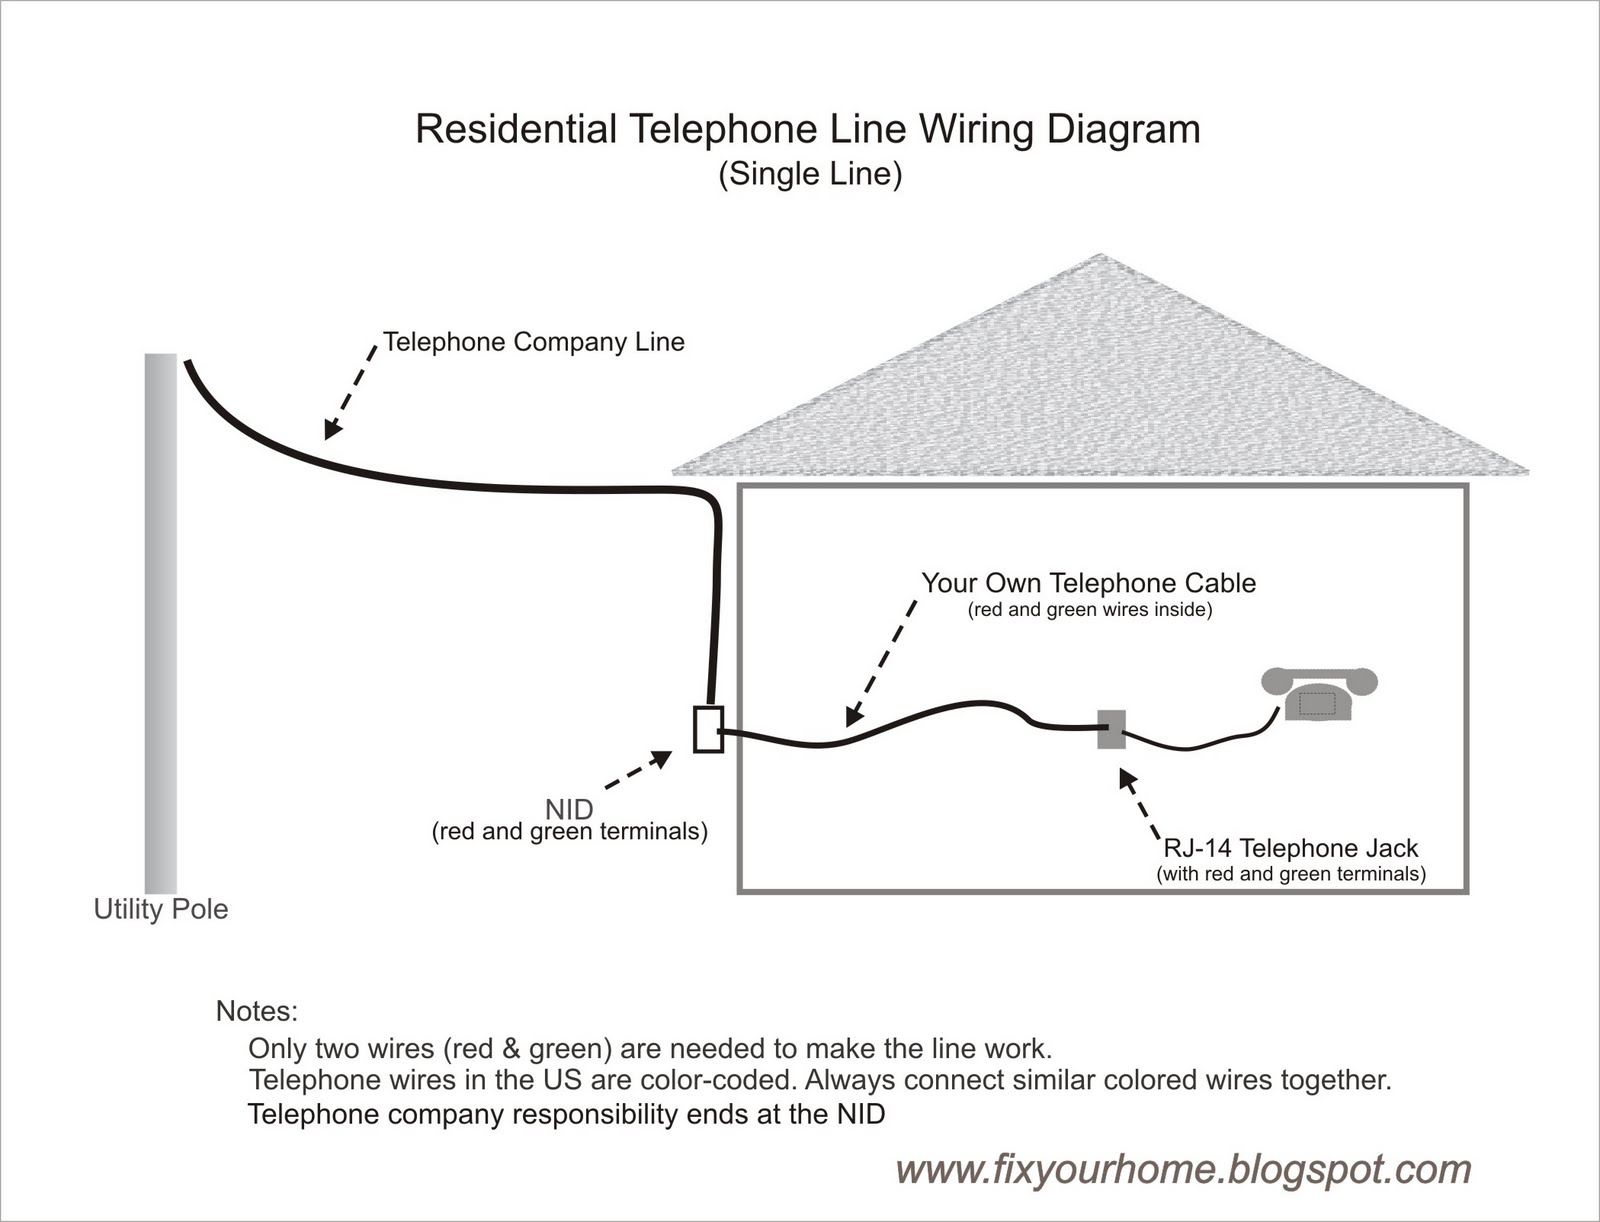 new line home phone line wiring diagram to in old phone phone line wire diagram fix your home: how to wire your own telephone line